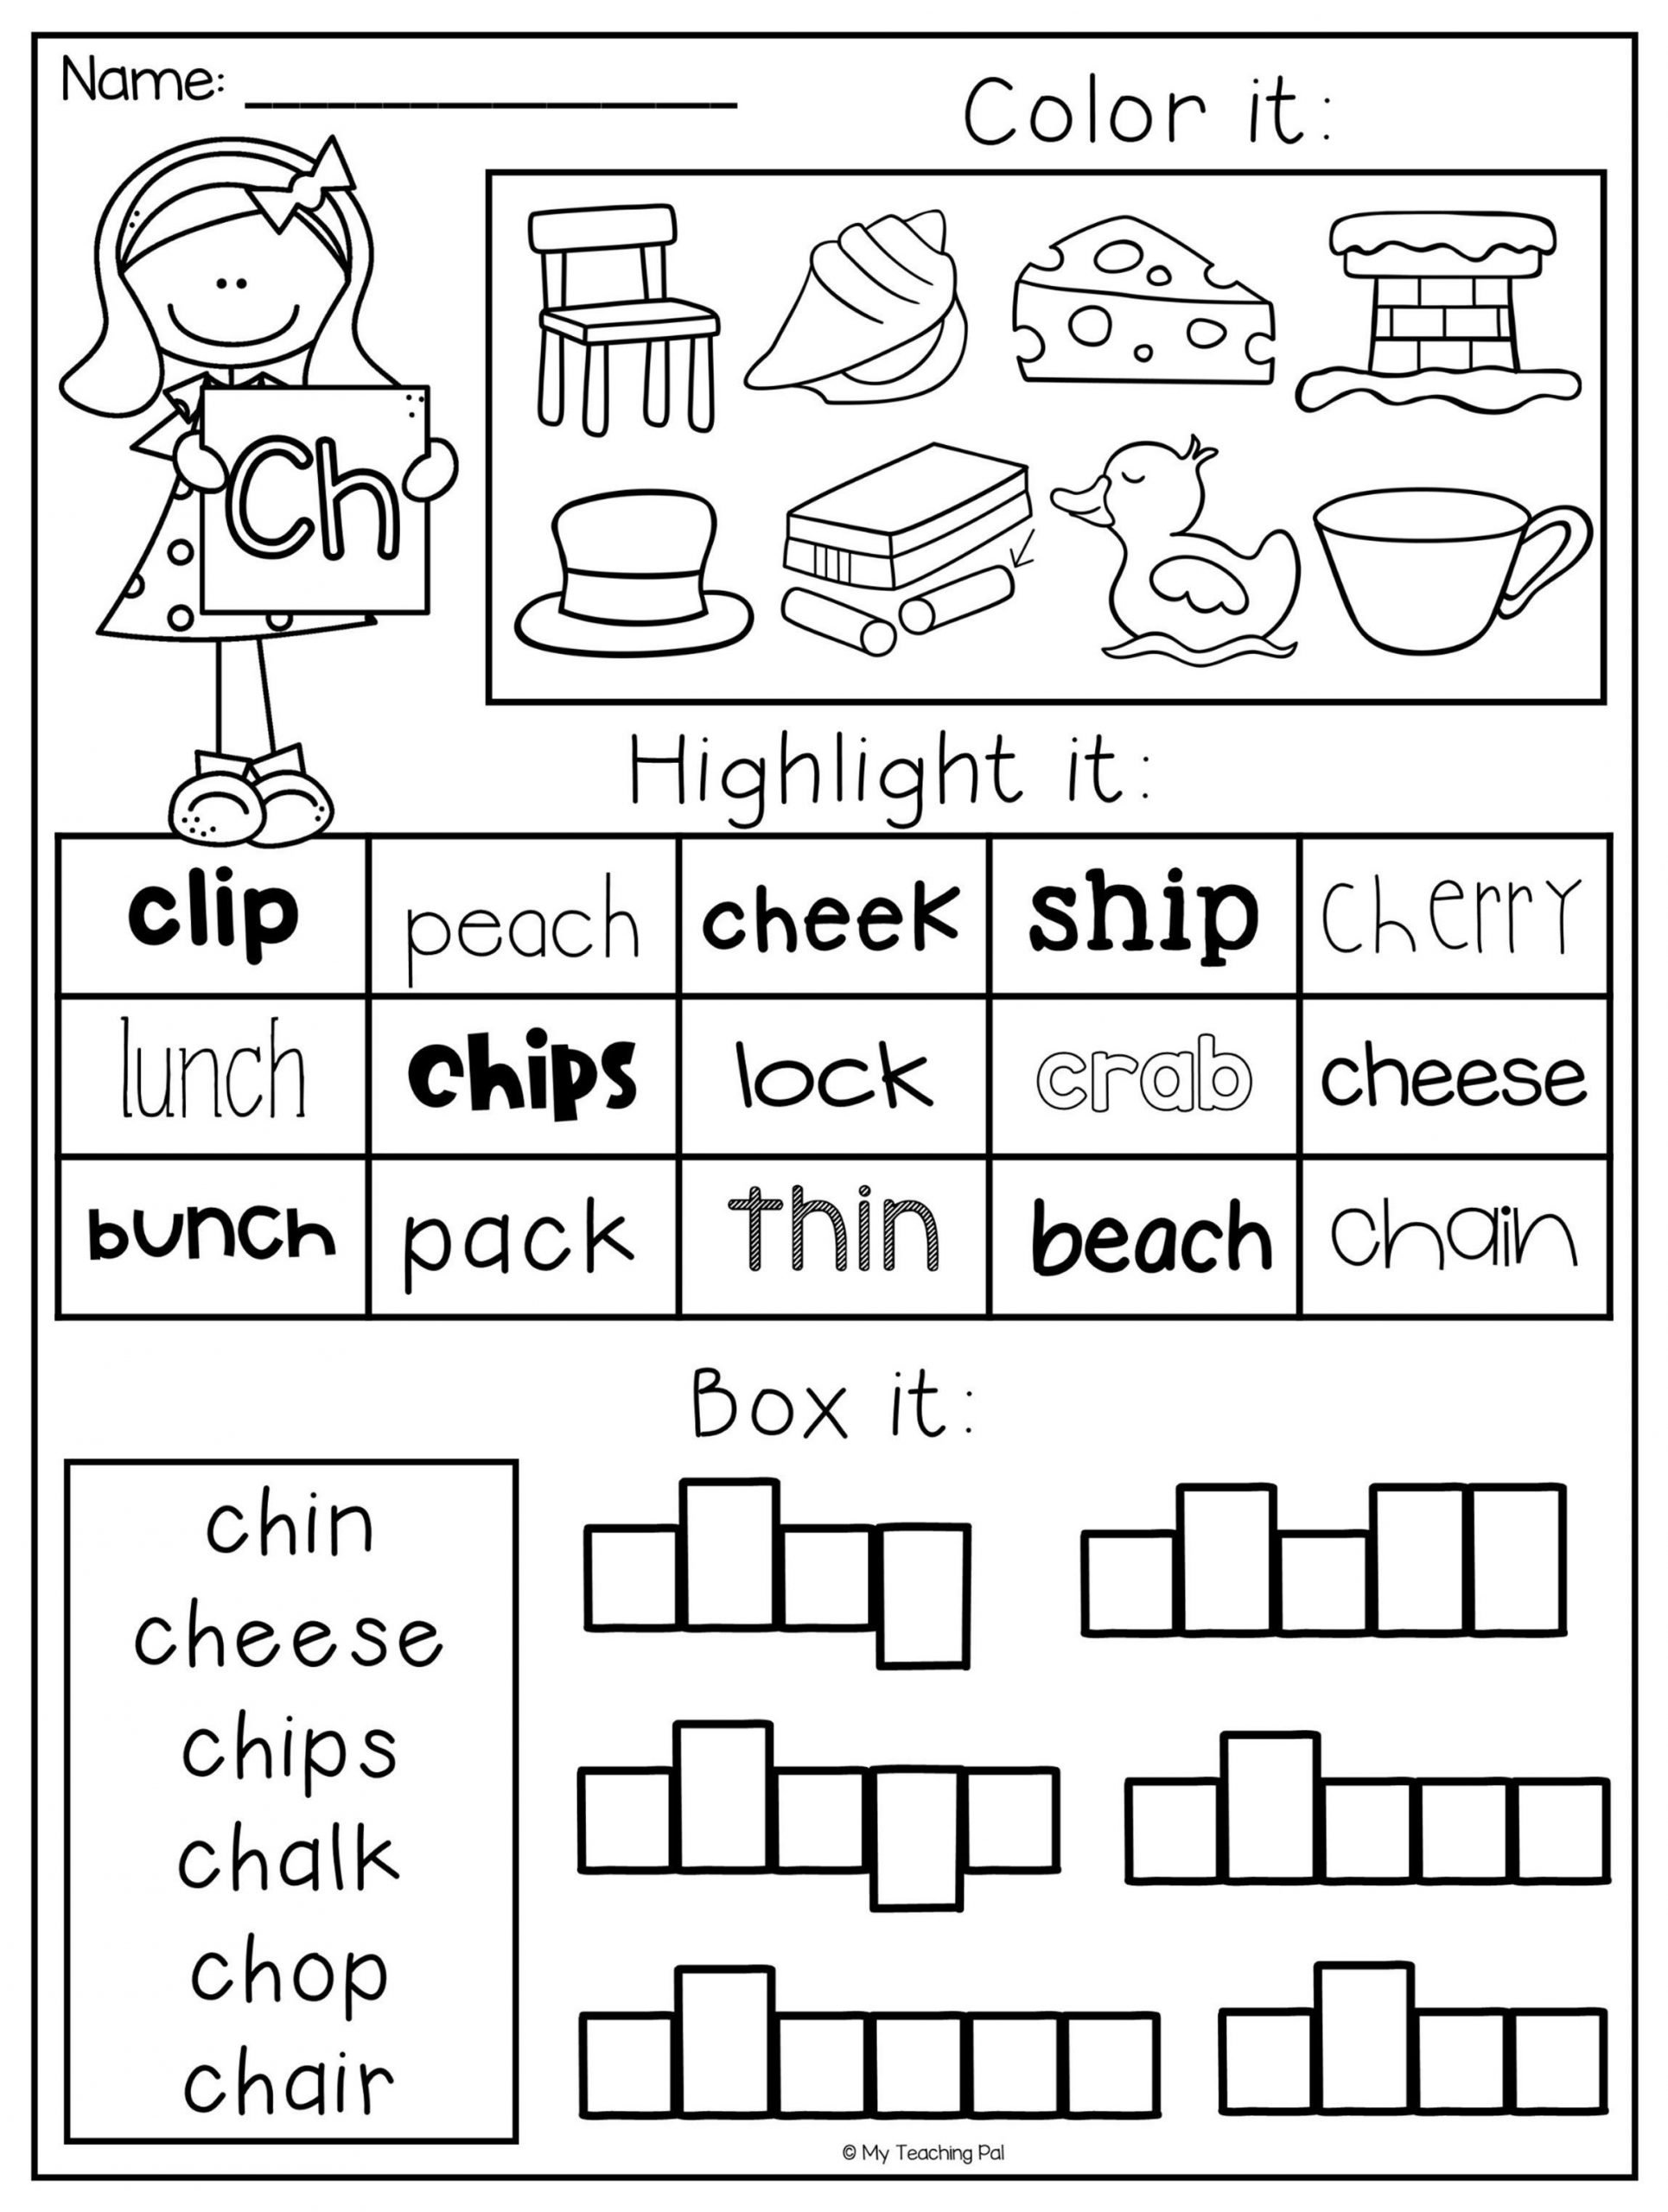 Digraph Worksheets for First Grade Elegant Sh Digraph Worksheet